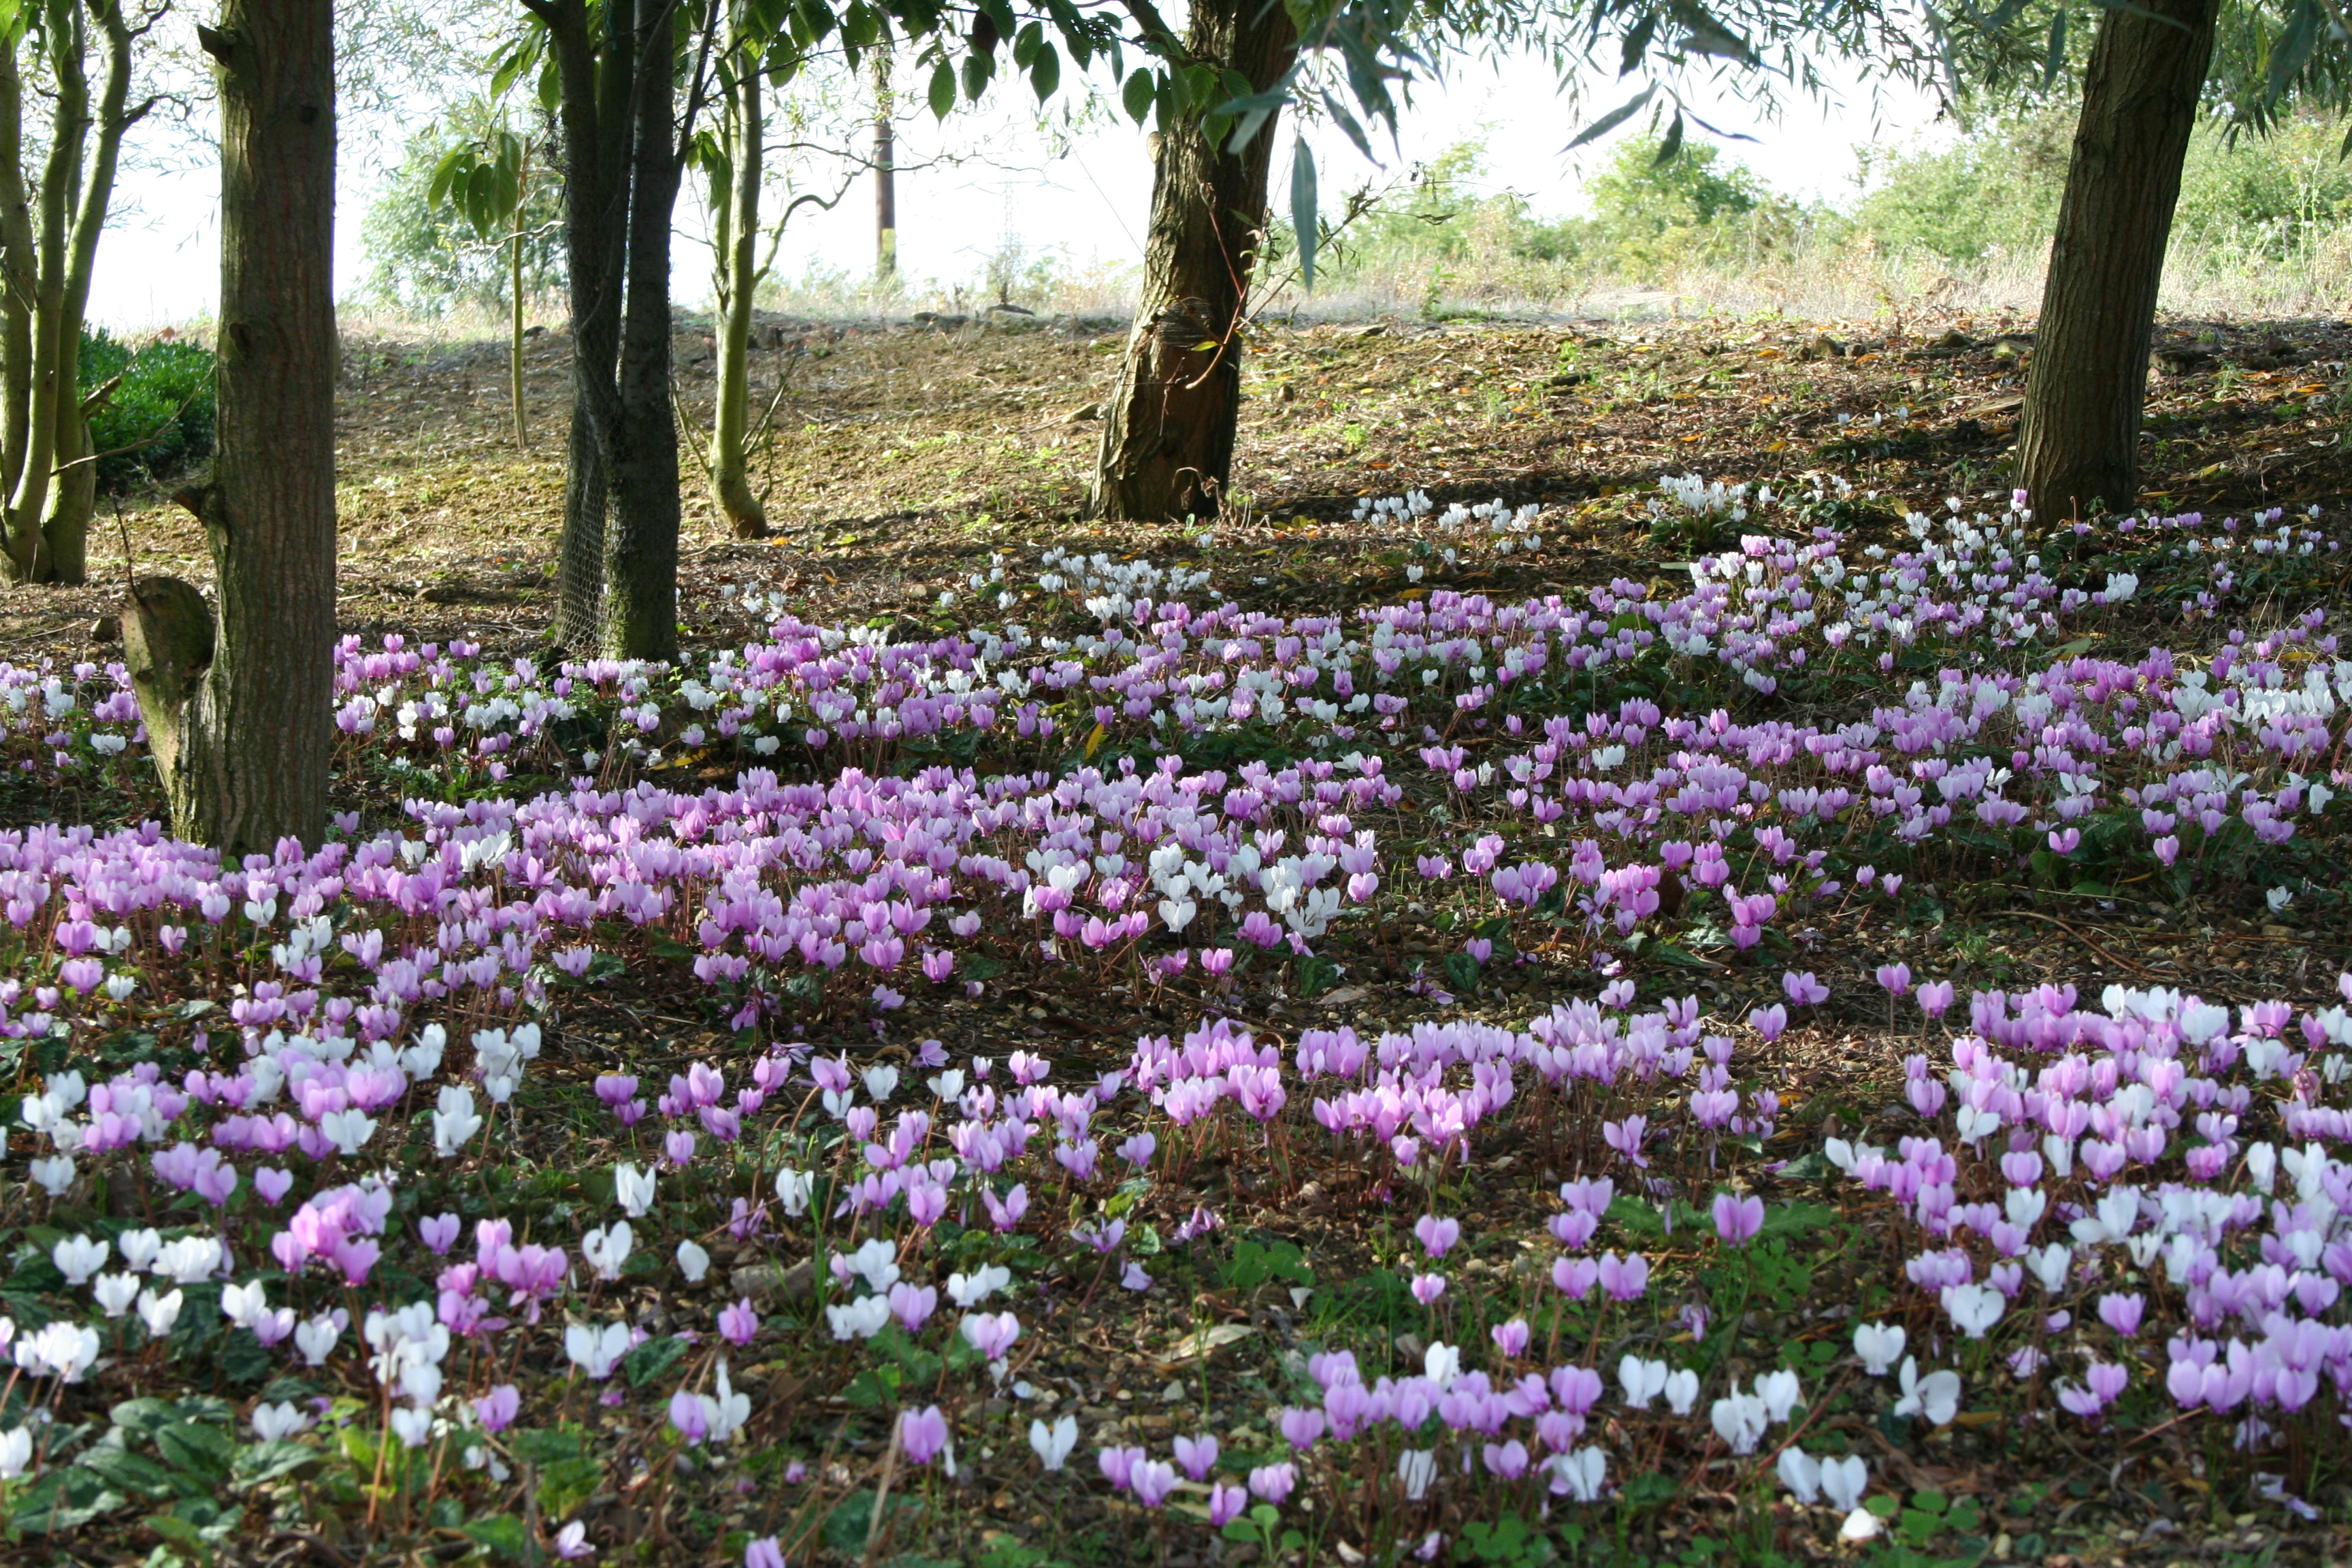 A 'drift' of pink and white flowered Cyclamen Hederifolium here at Willows Nursery in the autumn.